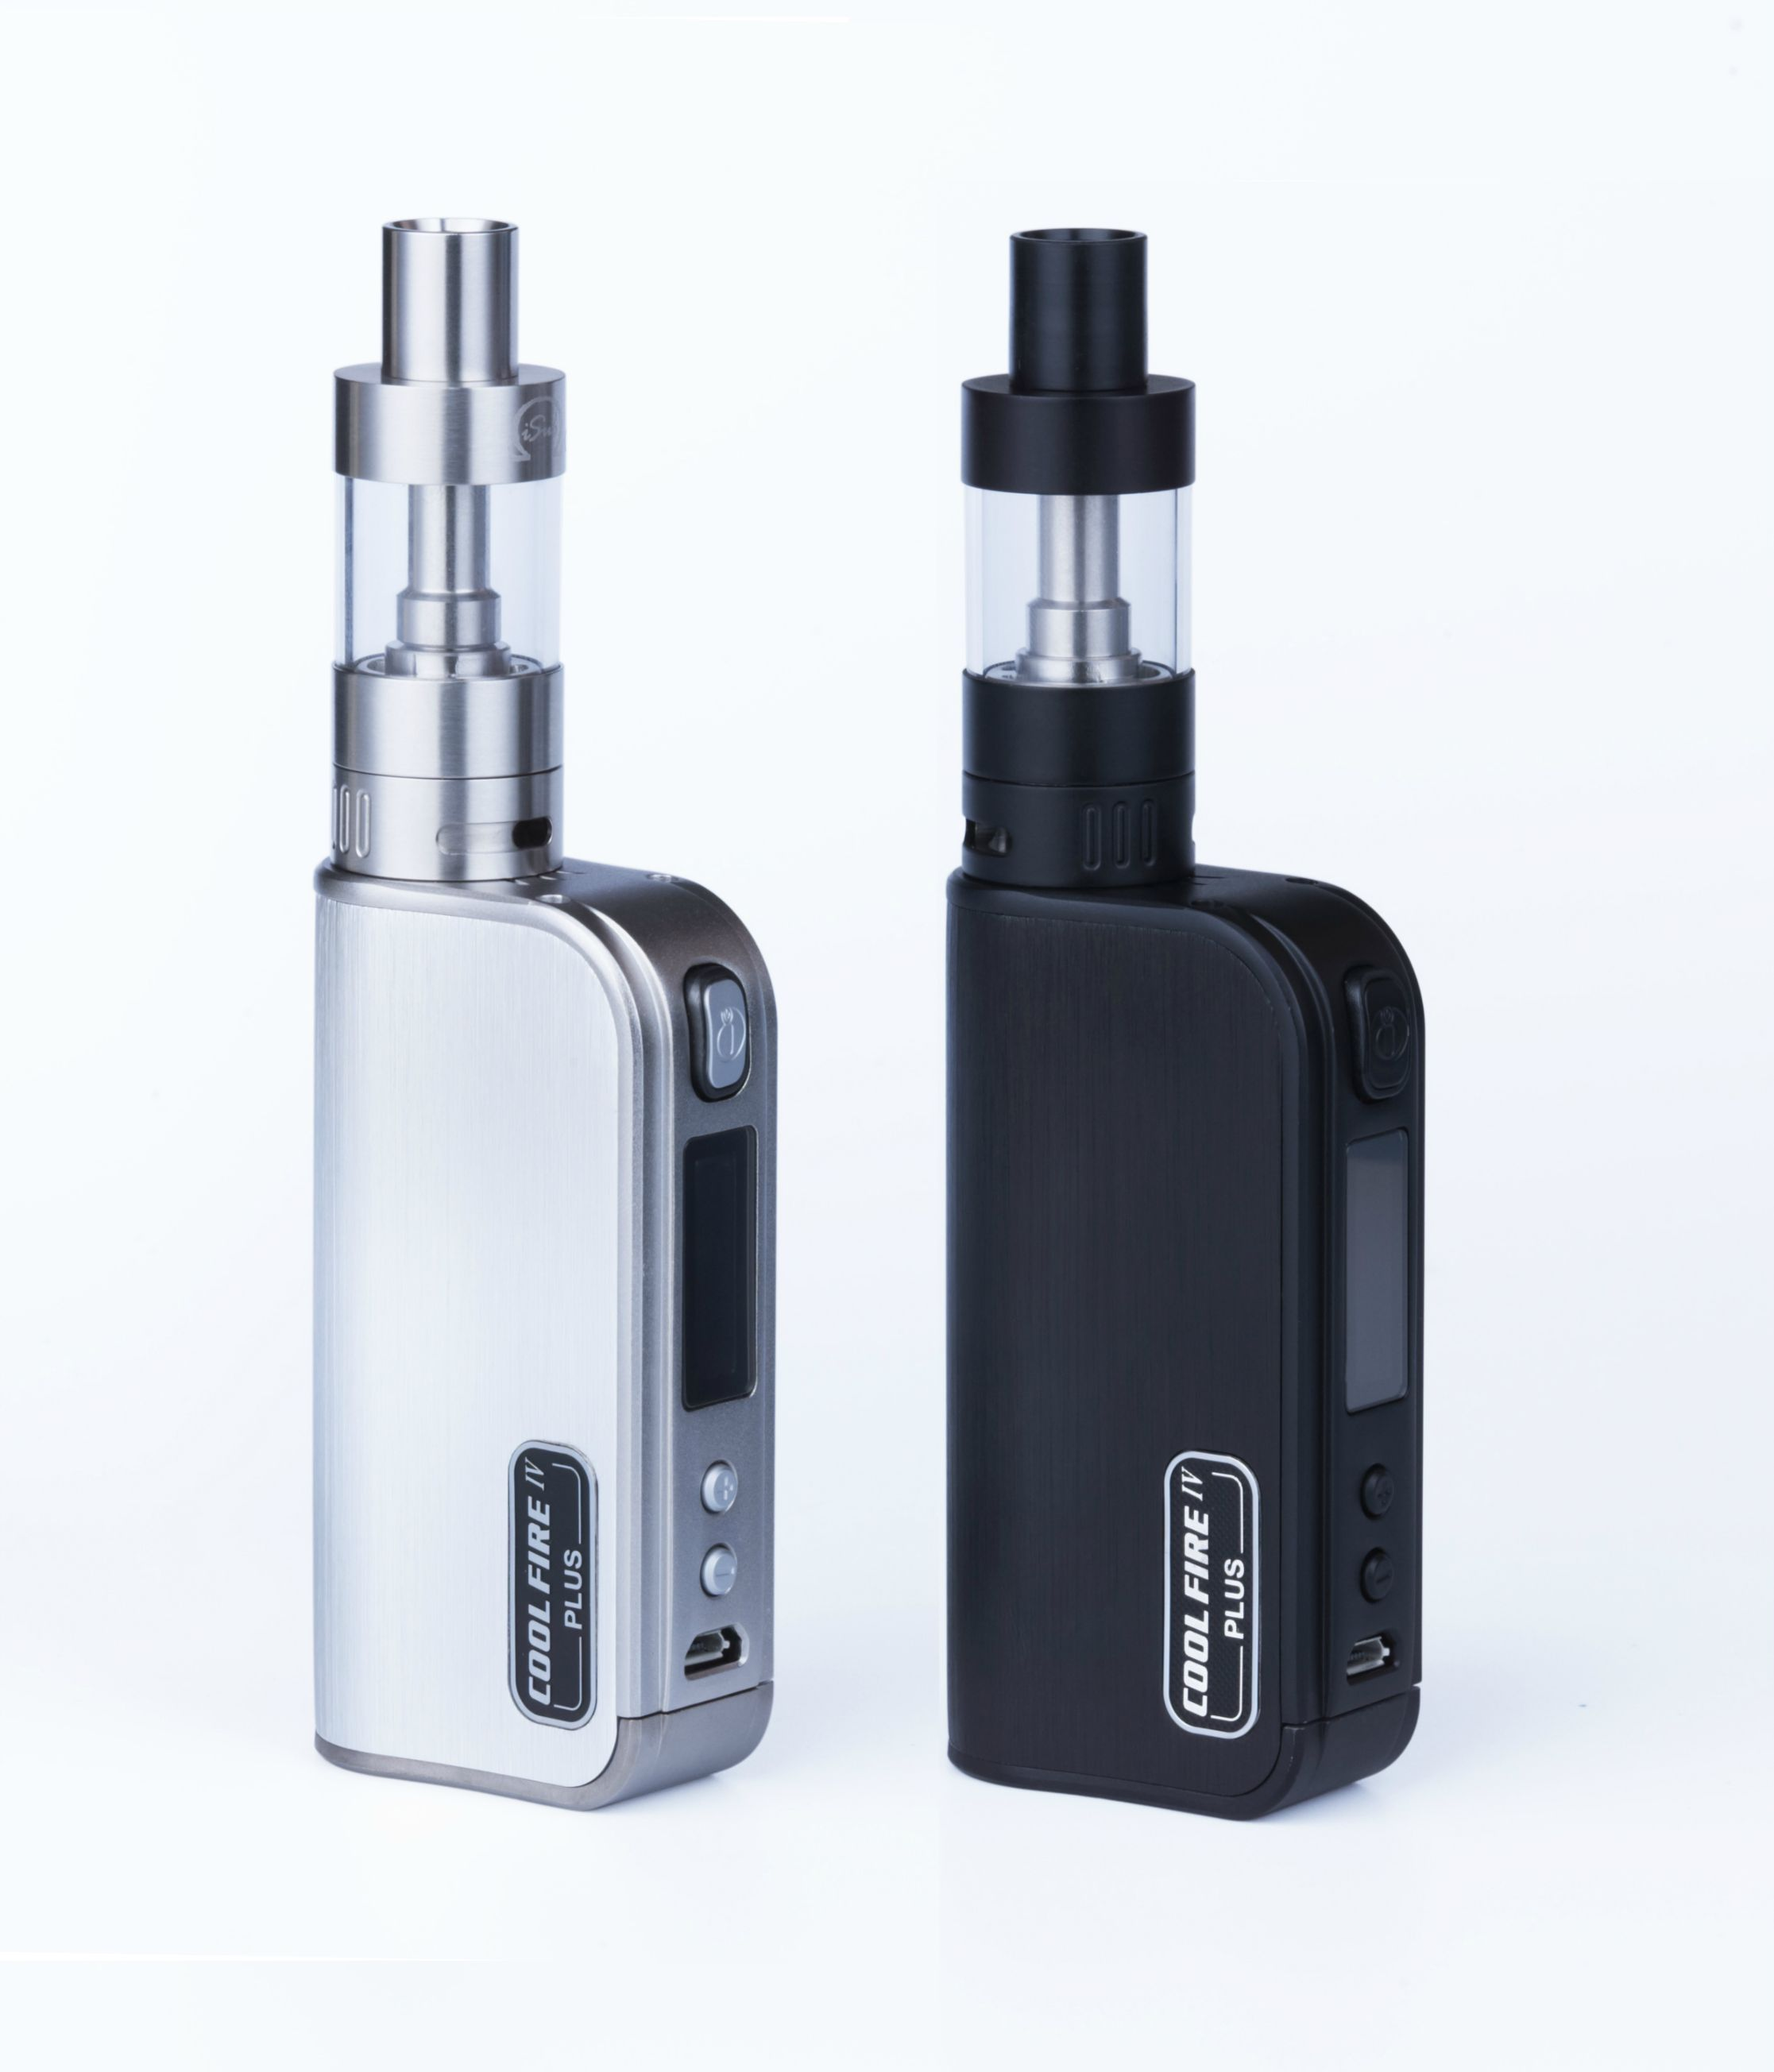 Cool Fire IV Plus With iSub Glass Tank CoolFire (UK Seller) in  Collectables, Tobacciana/ Smoking, Shisha Pipes